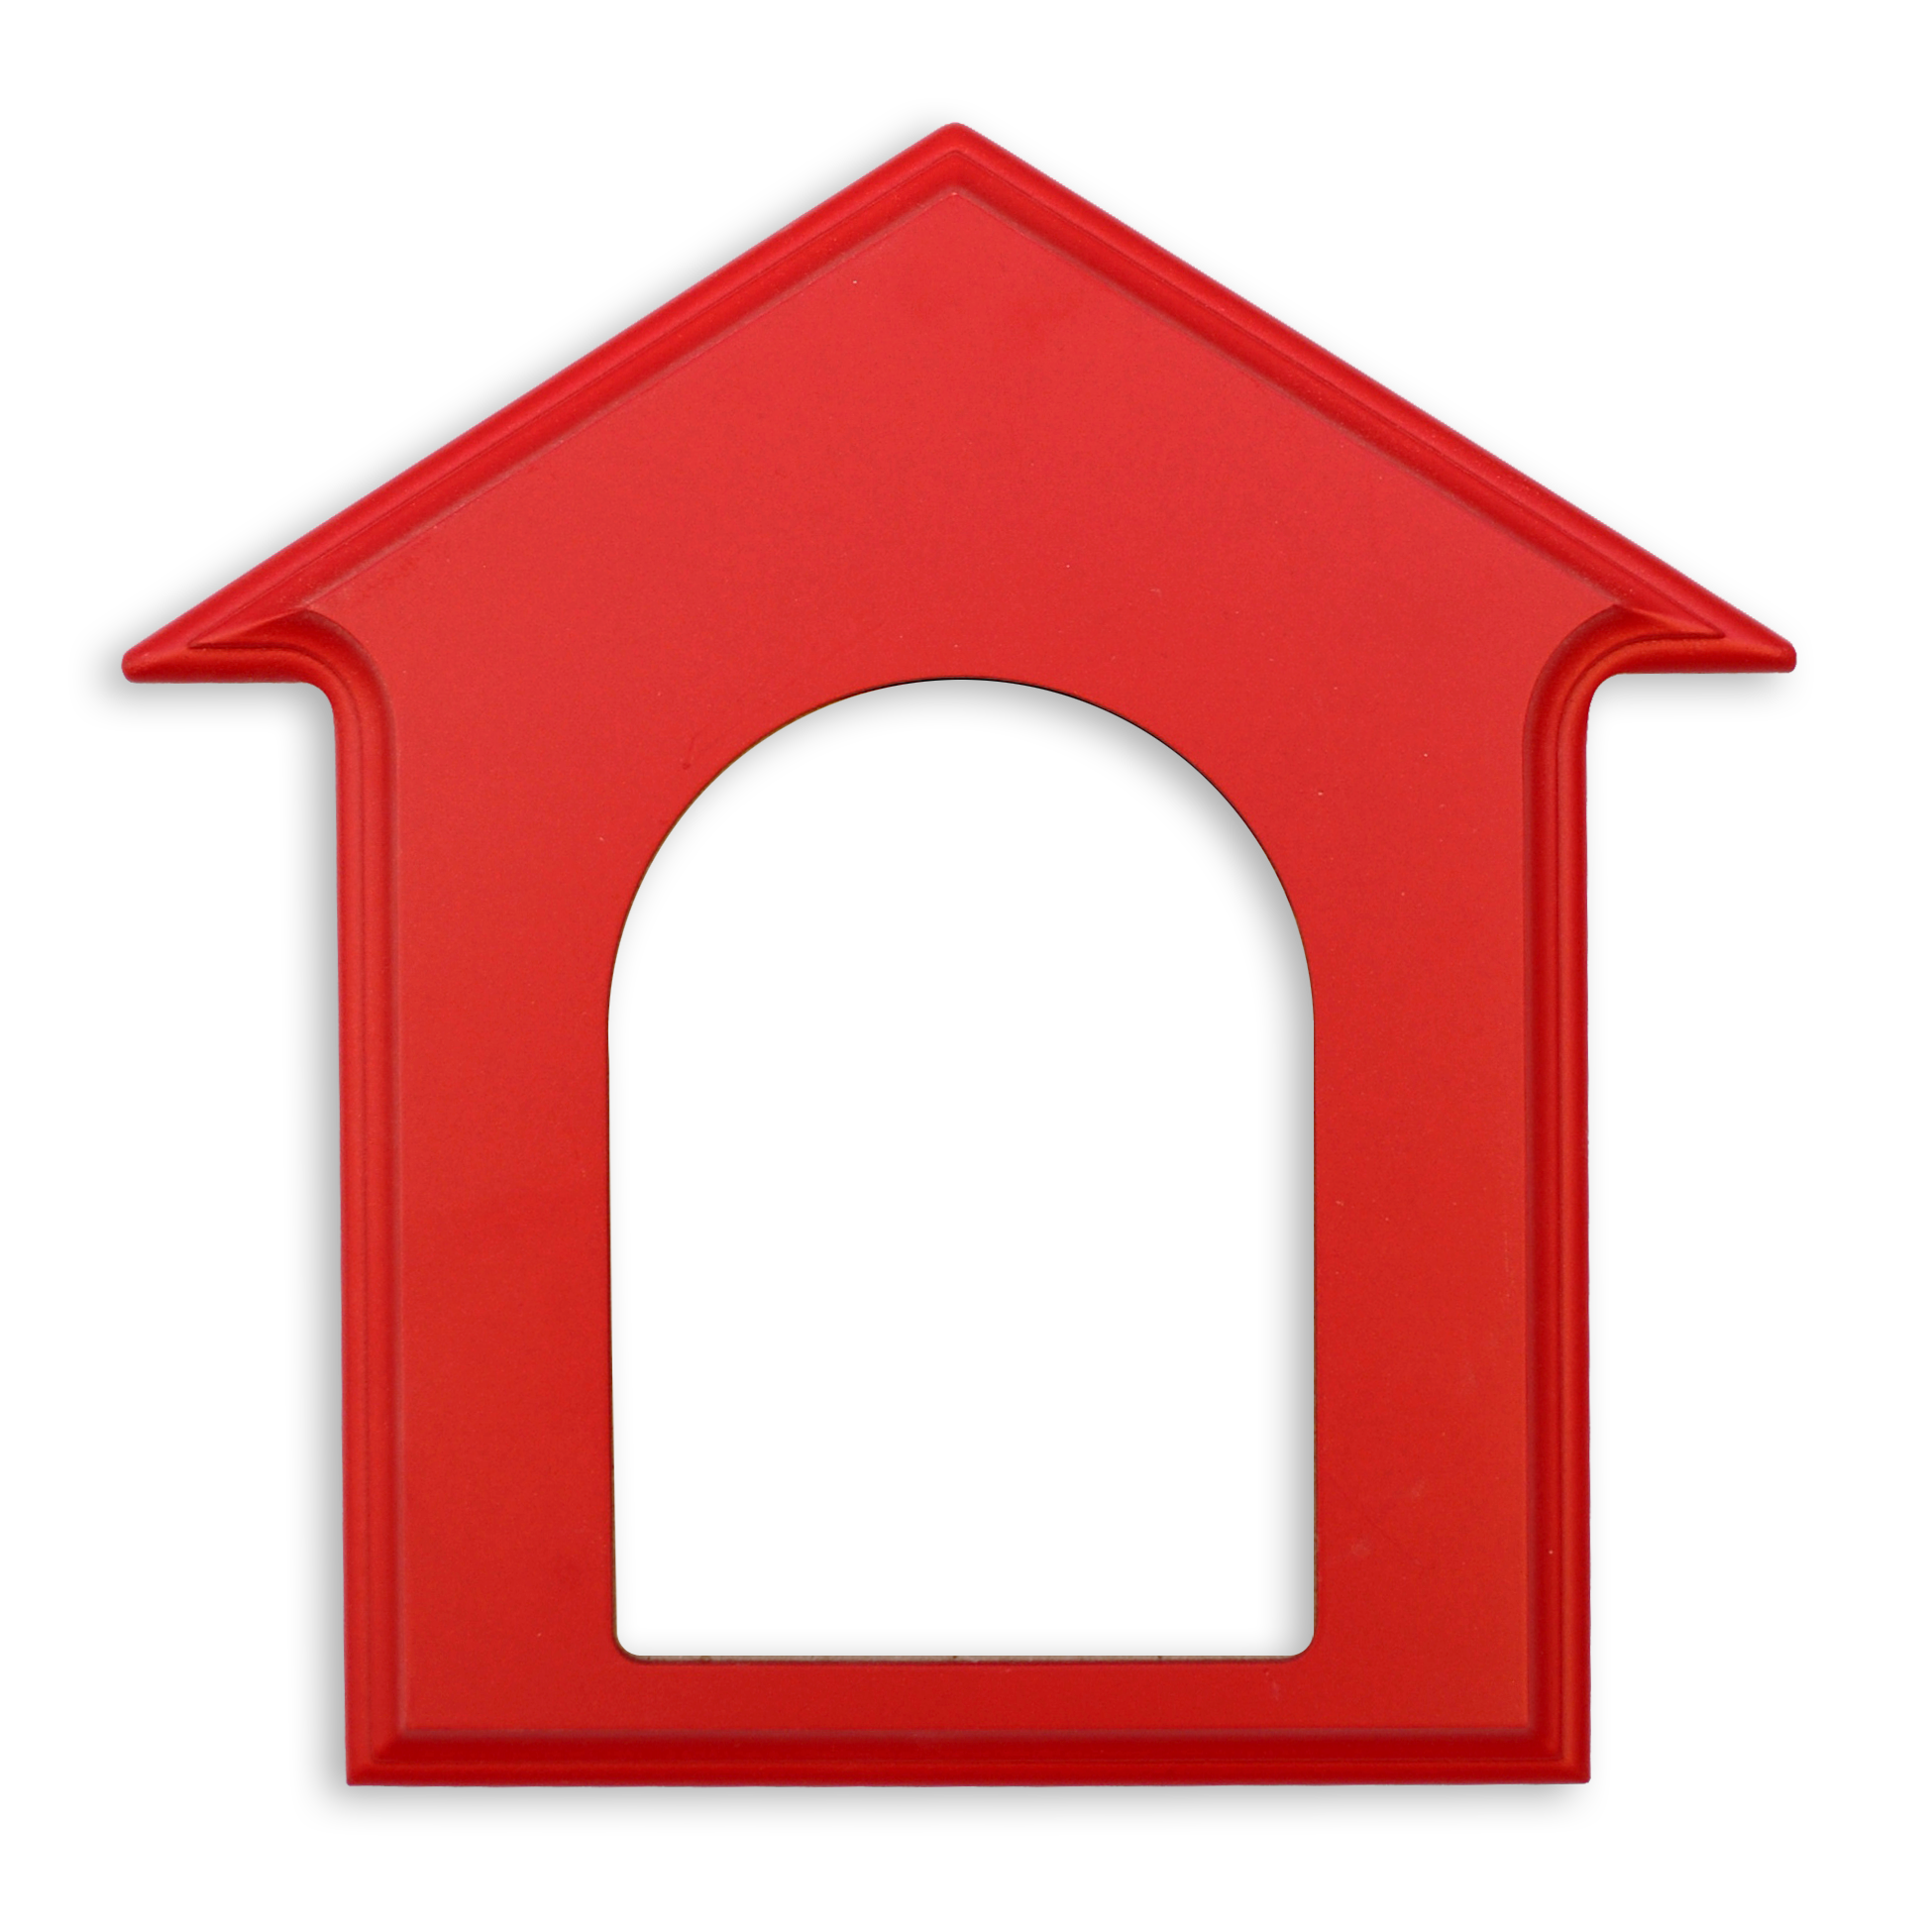 house frame clipart png 20 free Cliparts | Download images ... (1950 x 1950 Pixel)